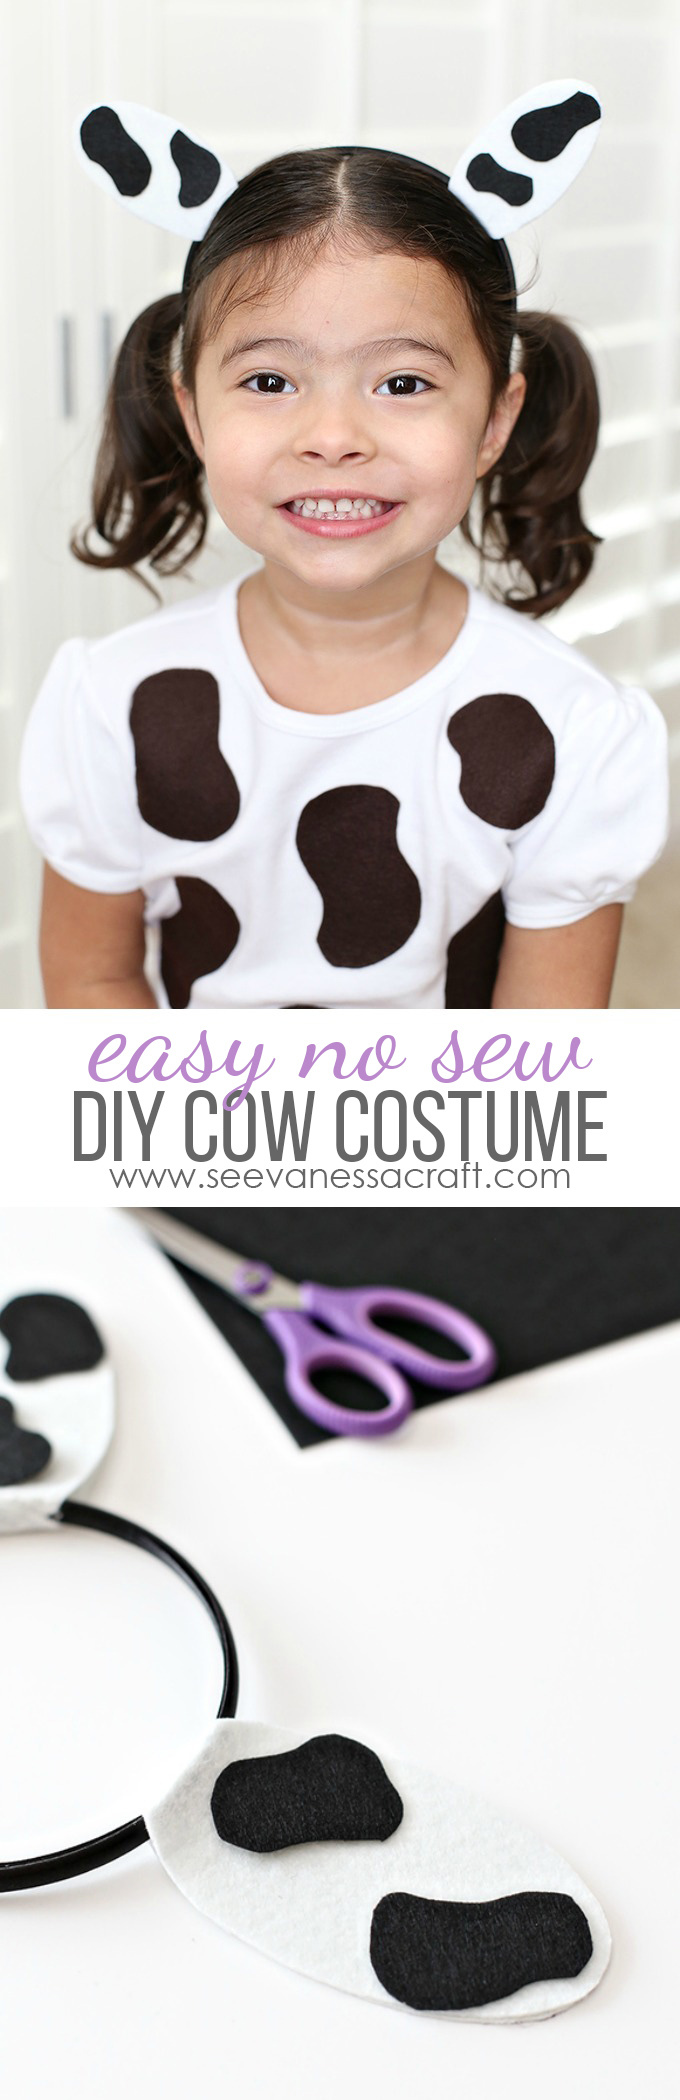 photo relating to Printable Chick Fil a Cow Costume named Craft: Cow Appreciation Working day Gown - Perspective Vanessa Craft